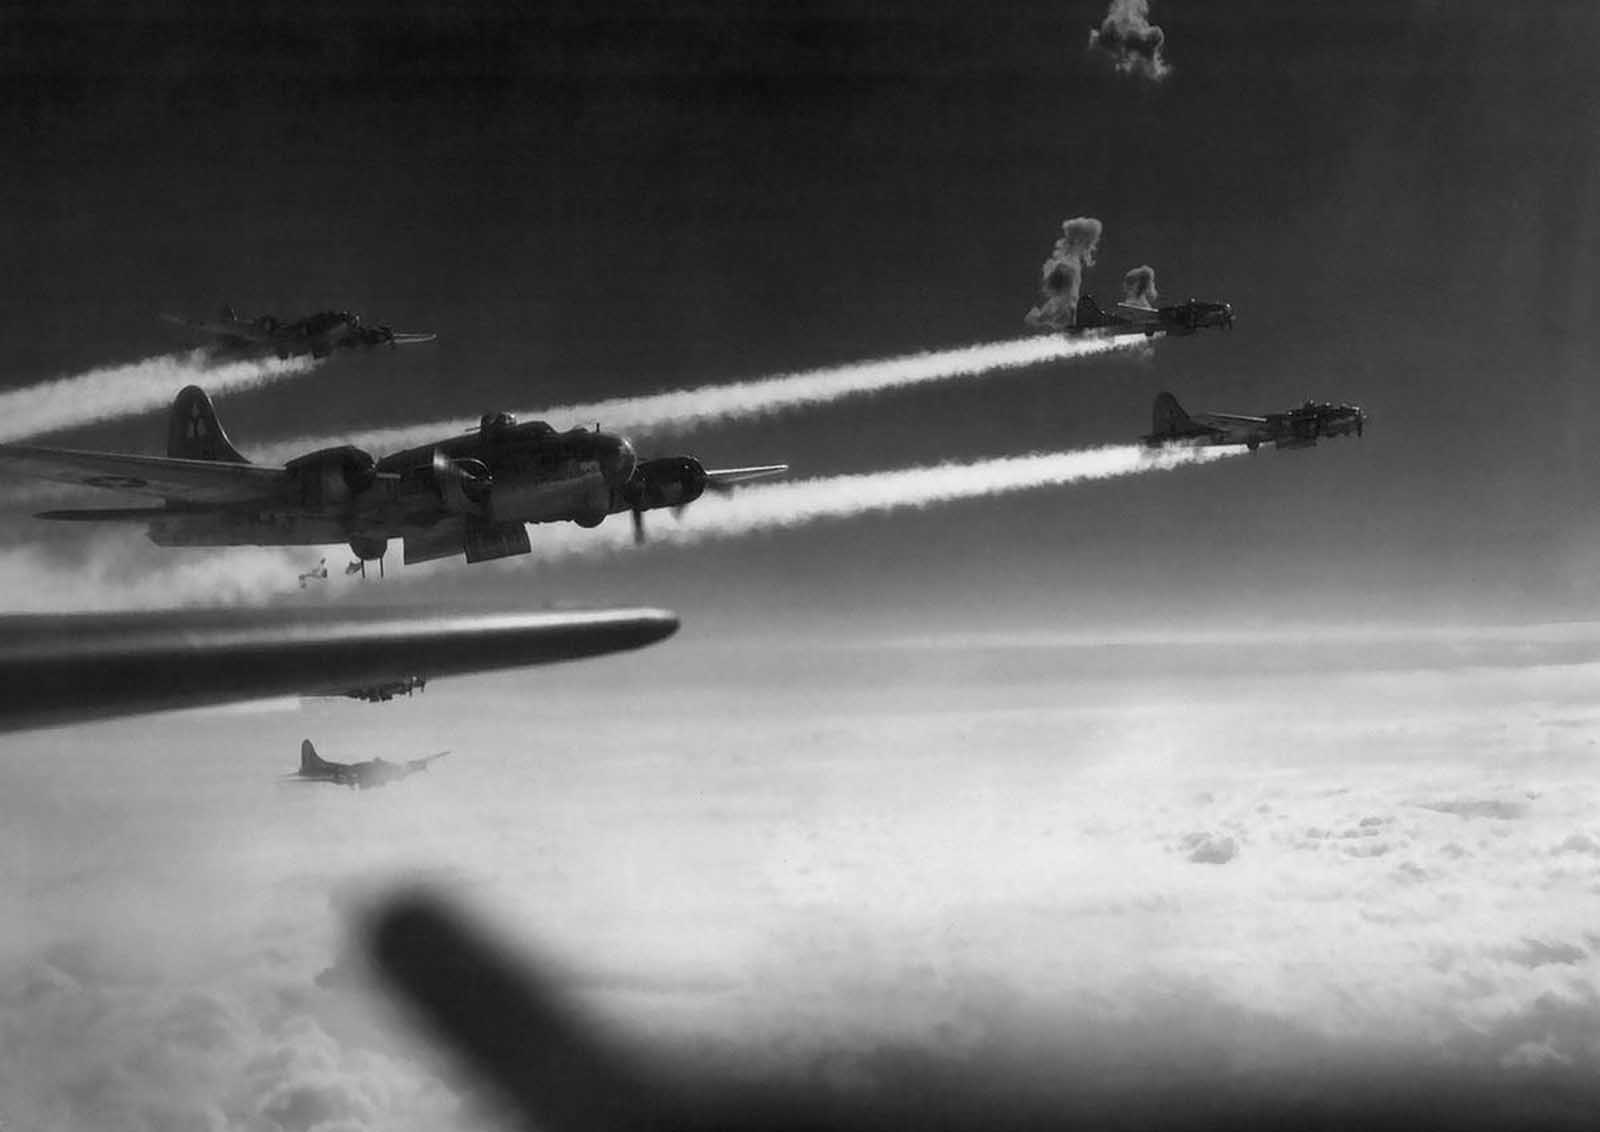 Flak bursts through the vapor trails from B-17 flying fortresses of the 15th air force during the attack on the rail yards at Graz, Austria, on March 3, 1945.